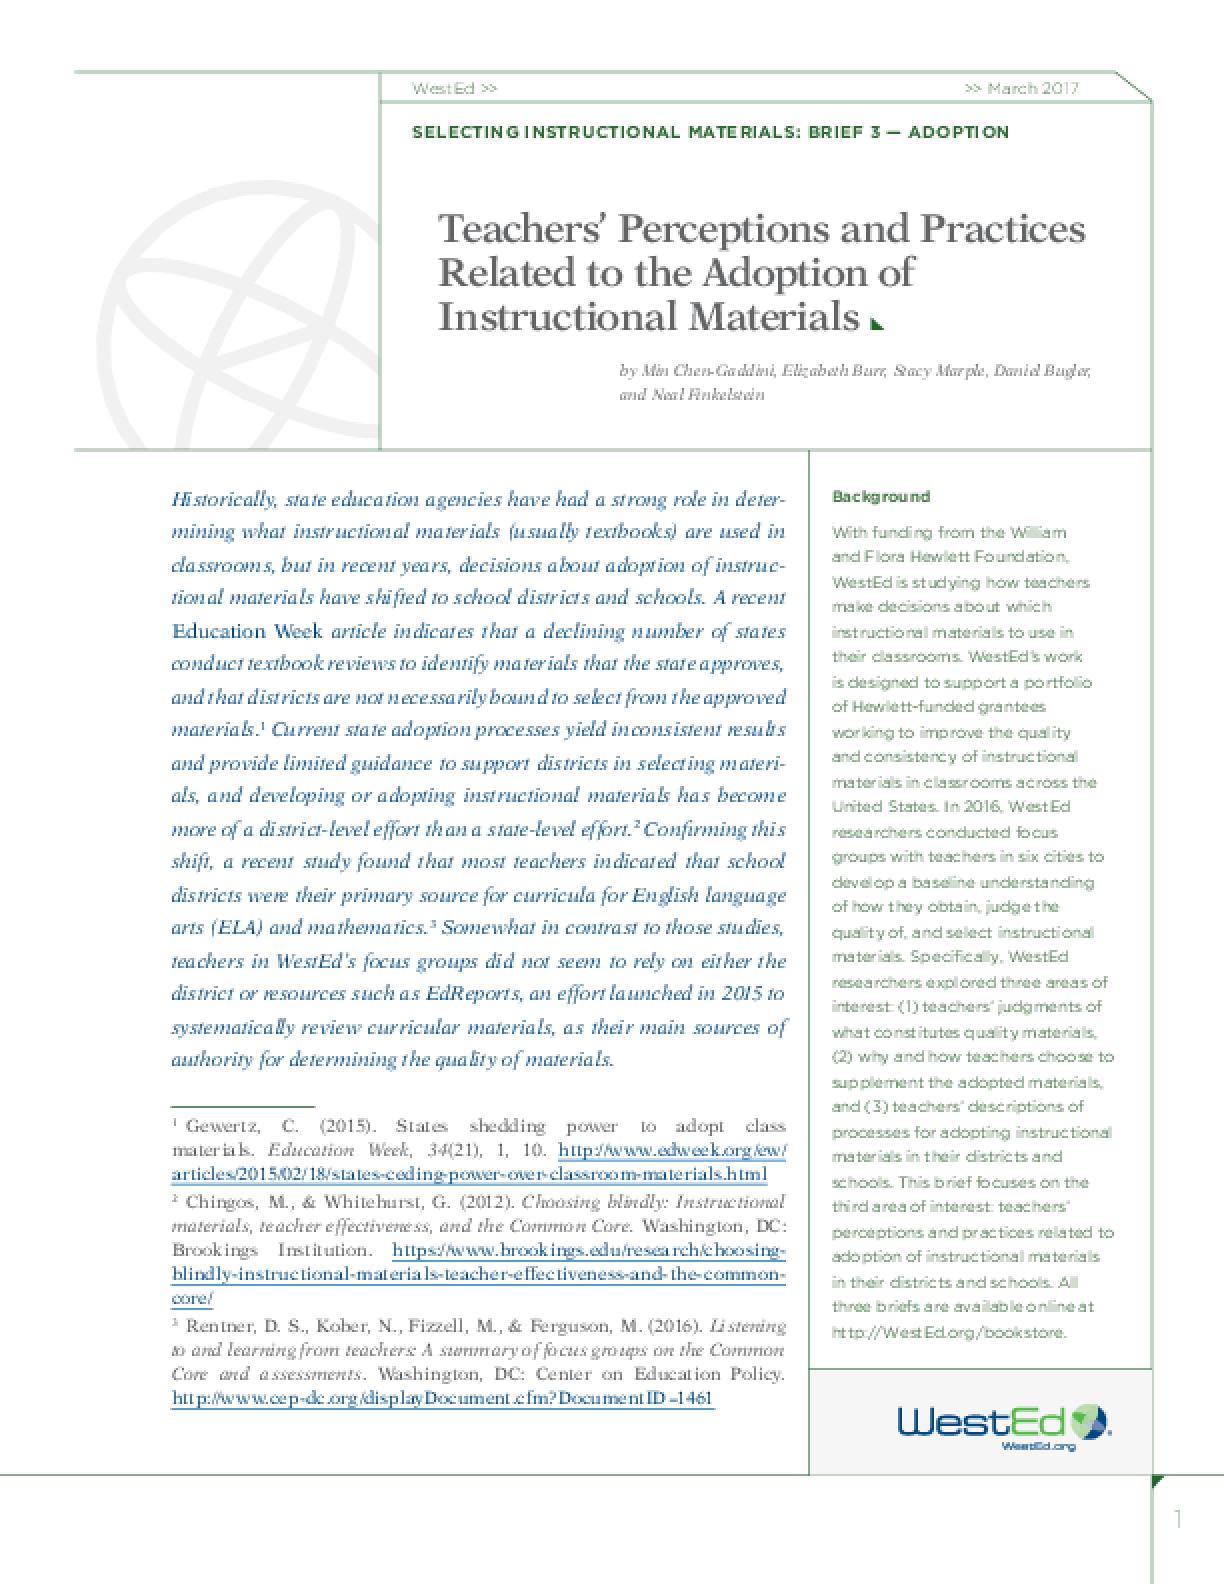 Teachers' Perceptions and Practices Related to the Adoption of Instructional Materials: Selecting Instructional Materials, Brief 3 - Adoption